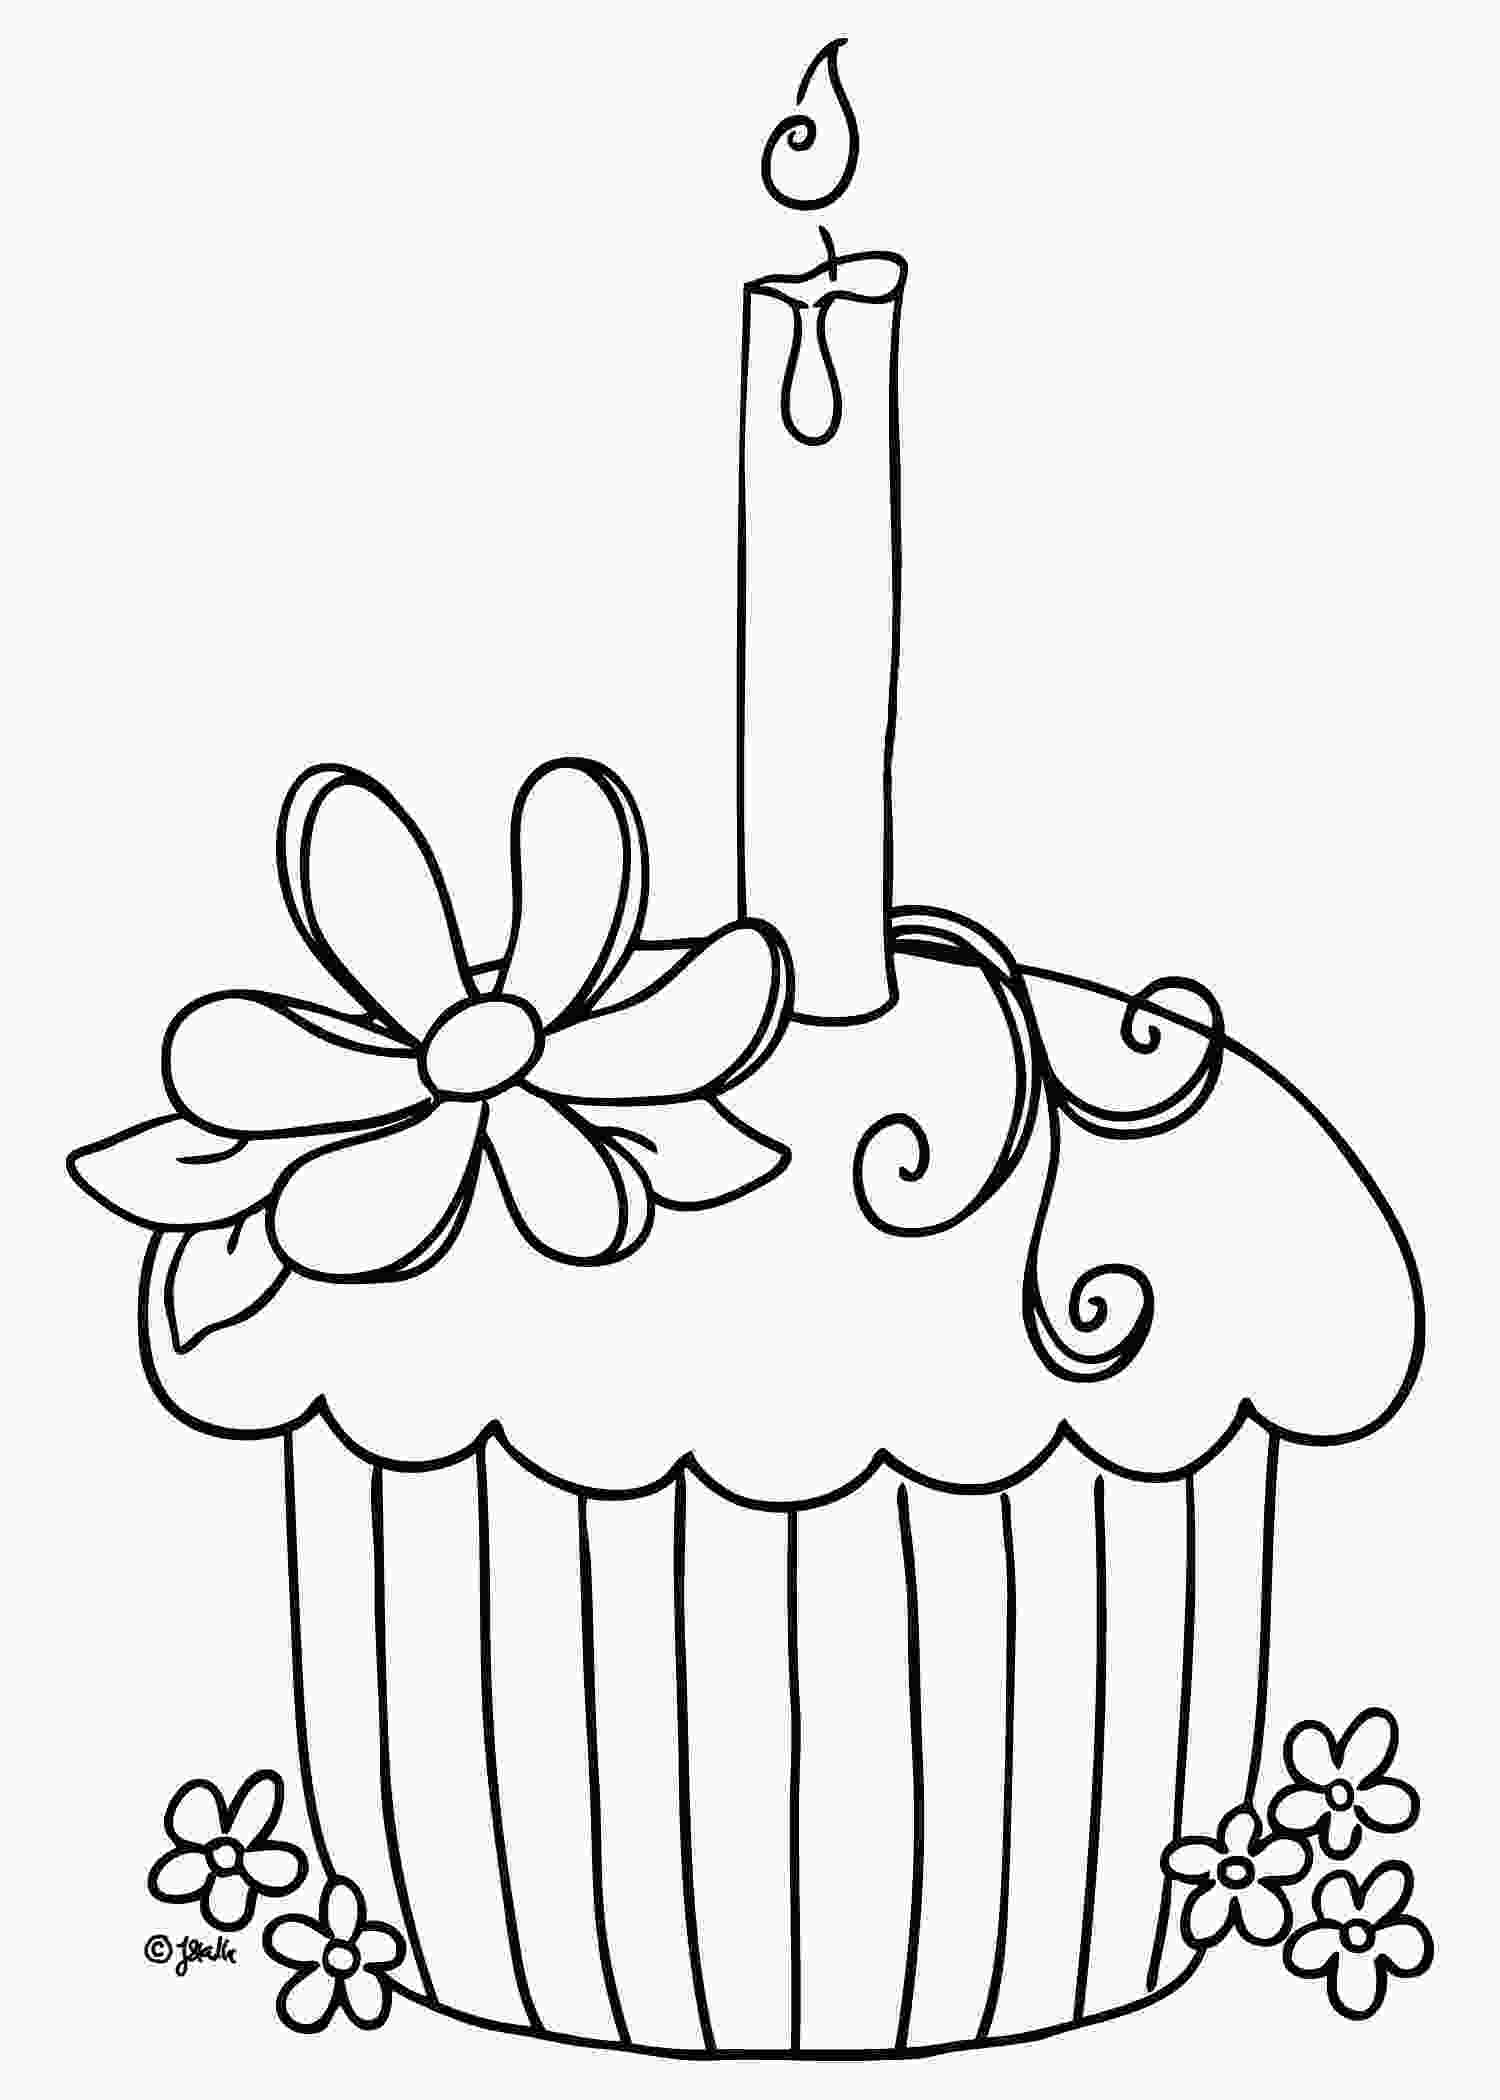 picture of cake to color free printable cupcake coloring pages for kids